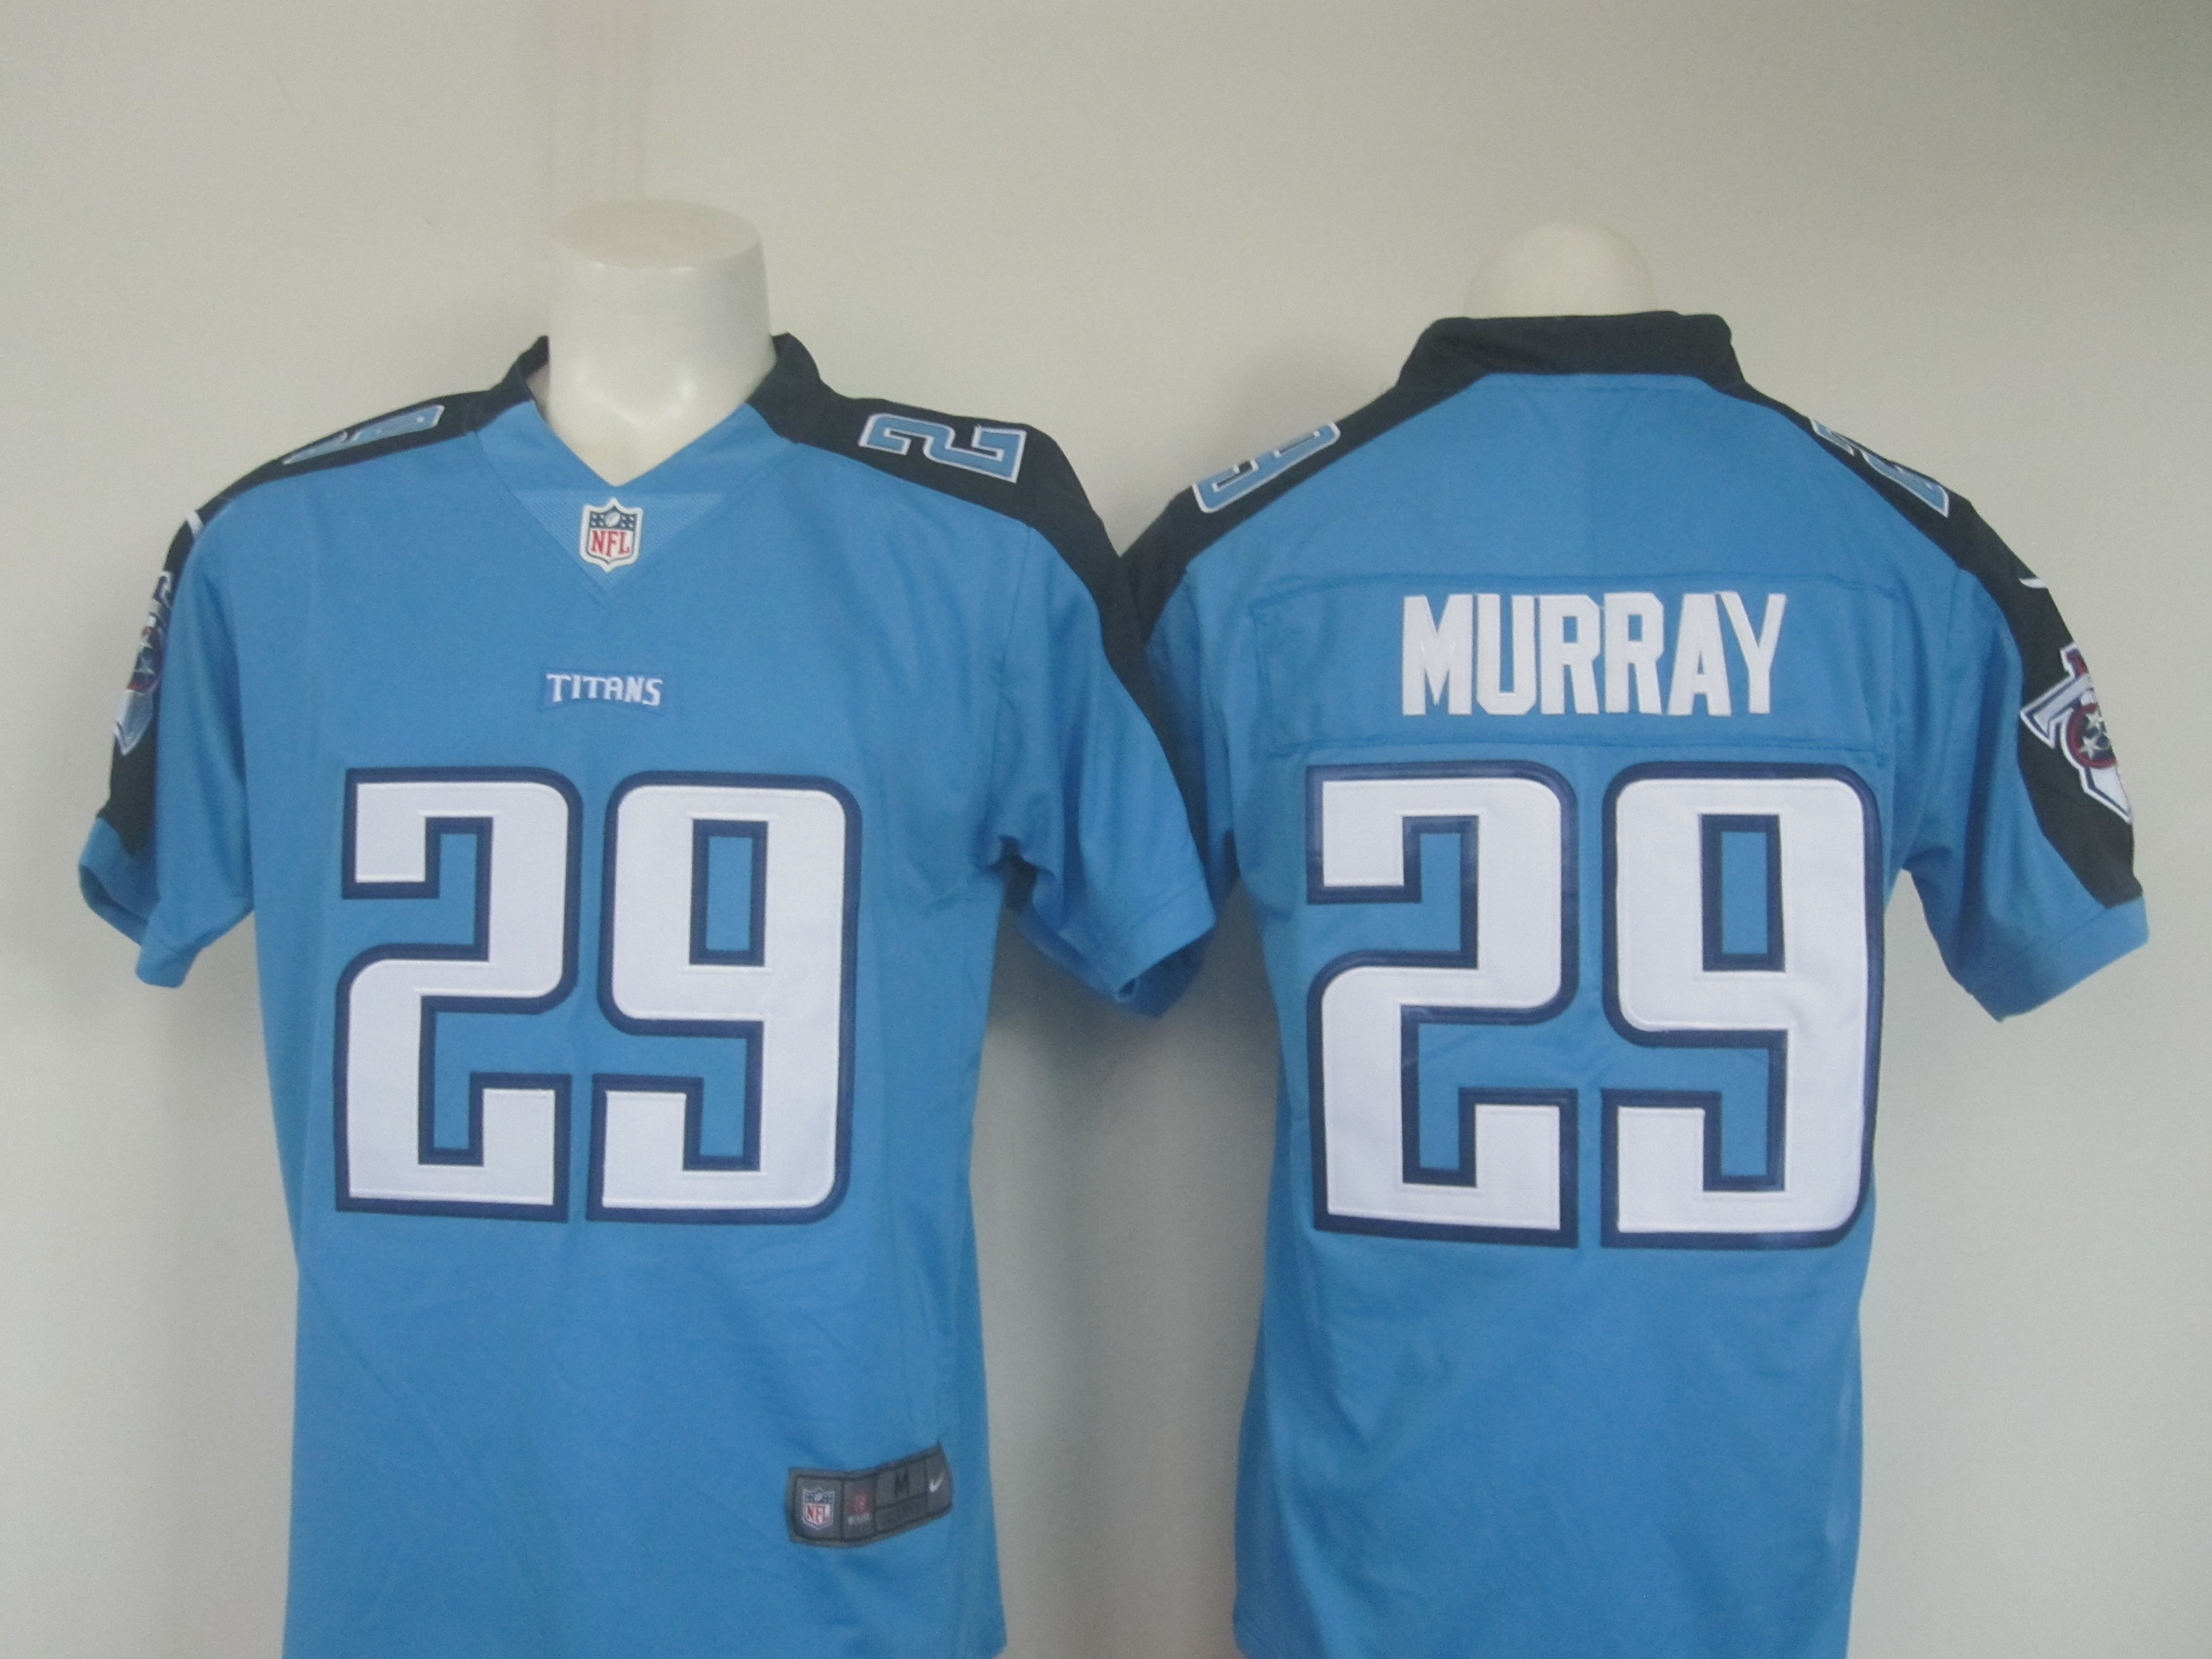 7740c2e6a44 Men's Nike Titans #29 DeMarco Murray Light Blue Limited Rush Stitched NFL  Jersey